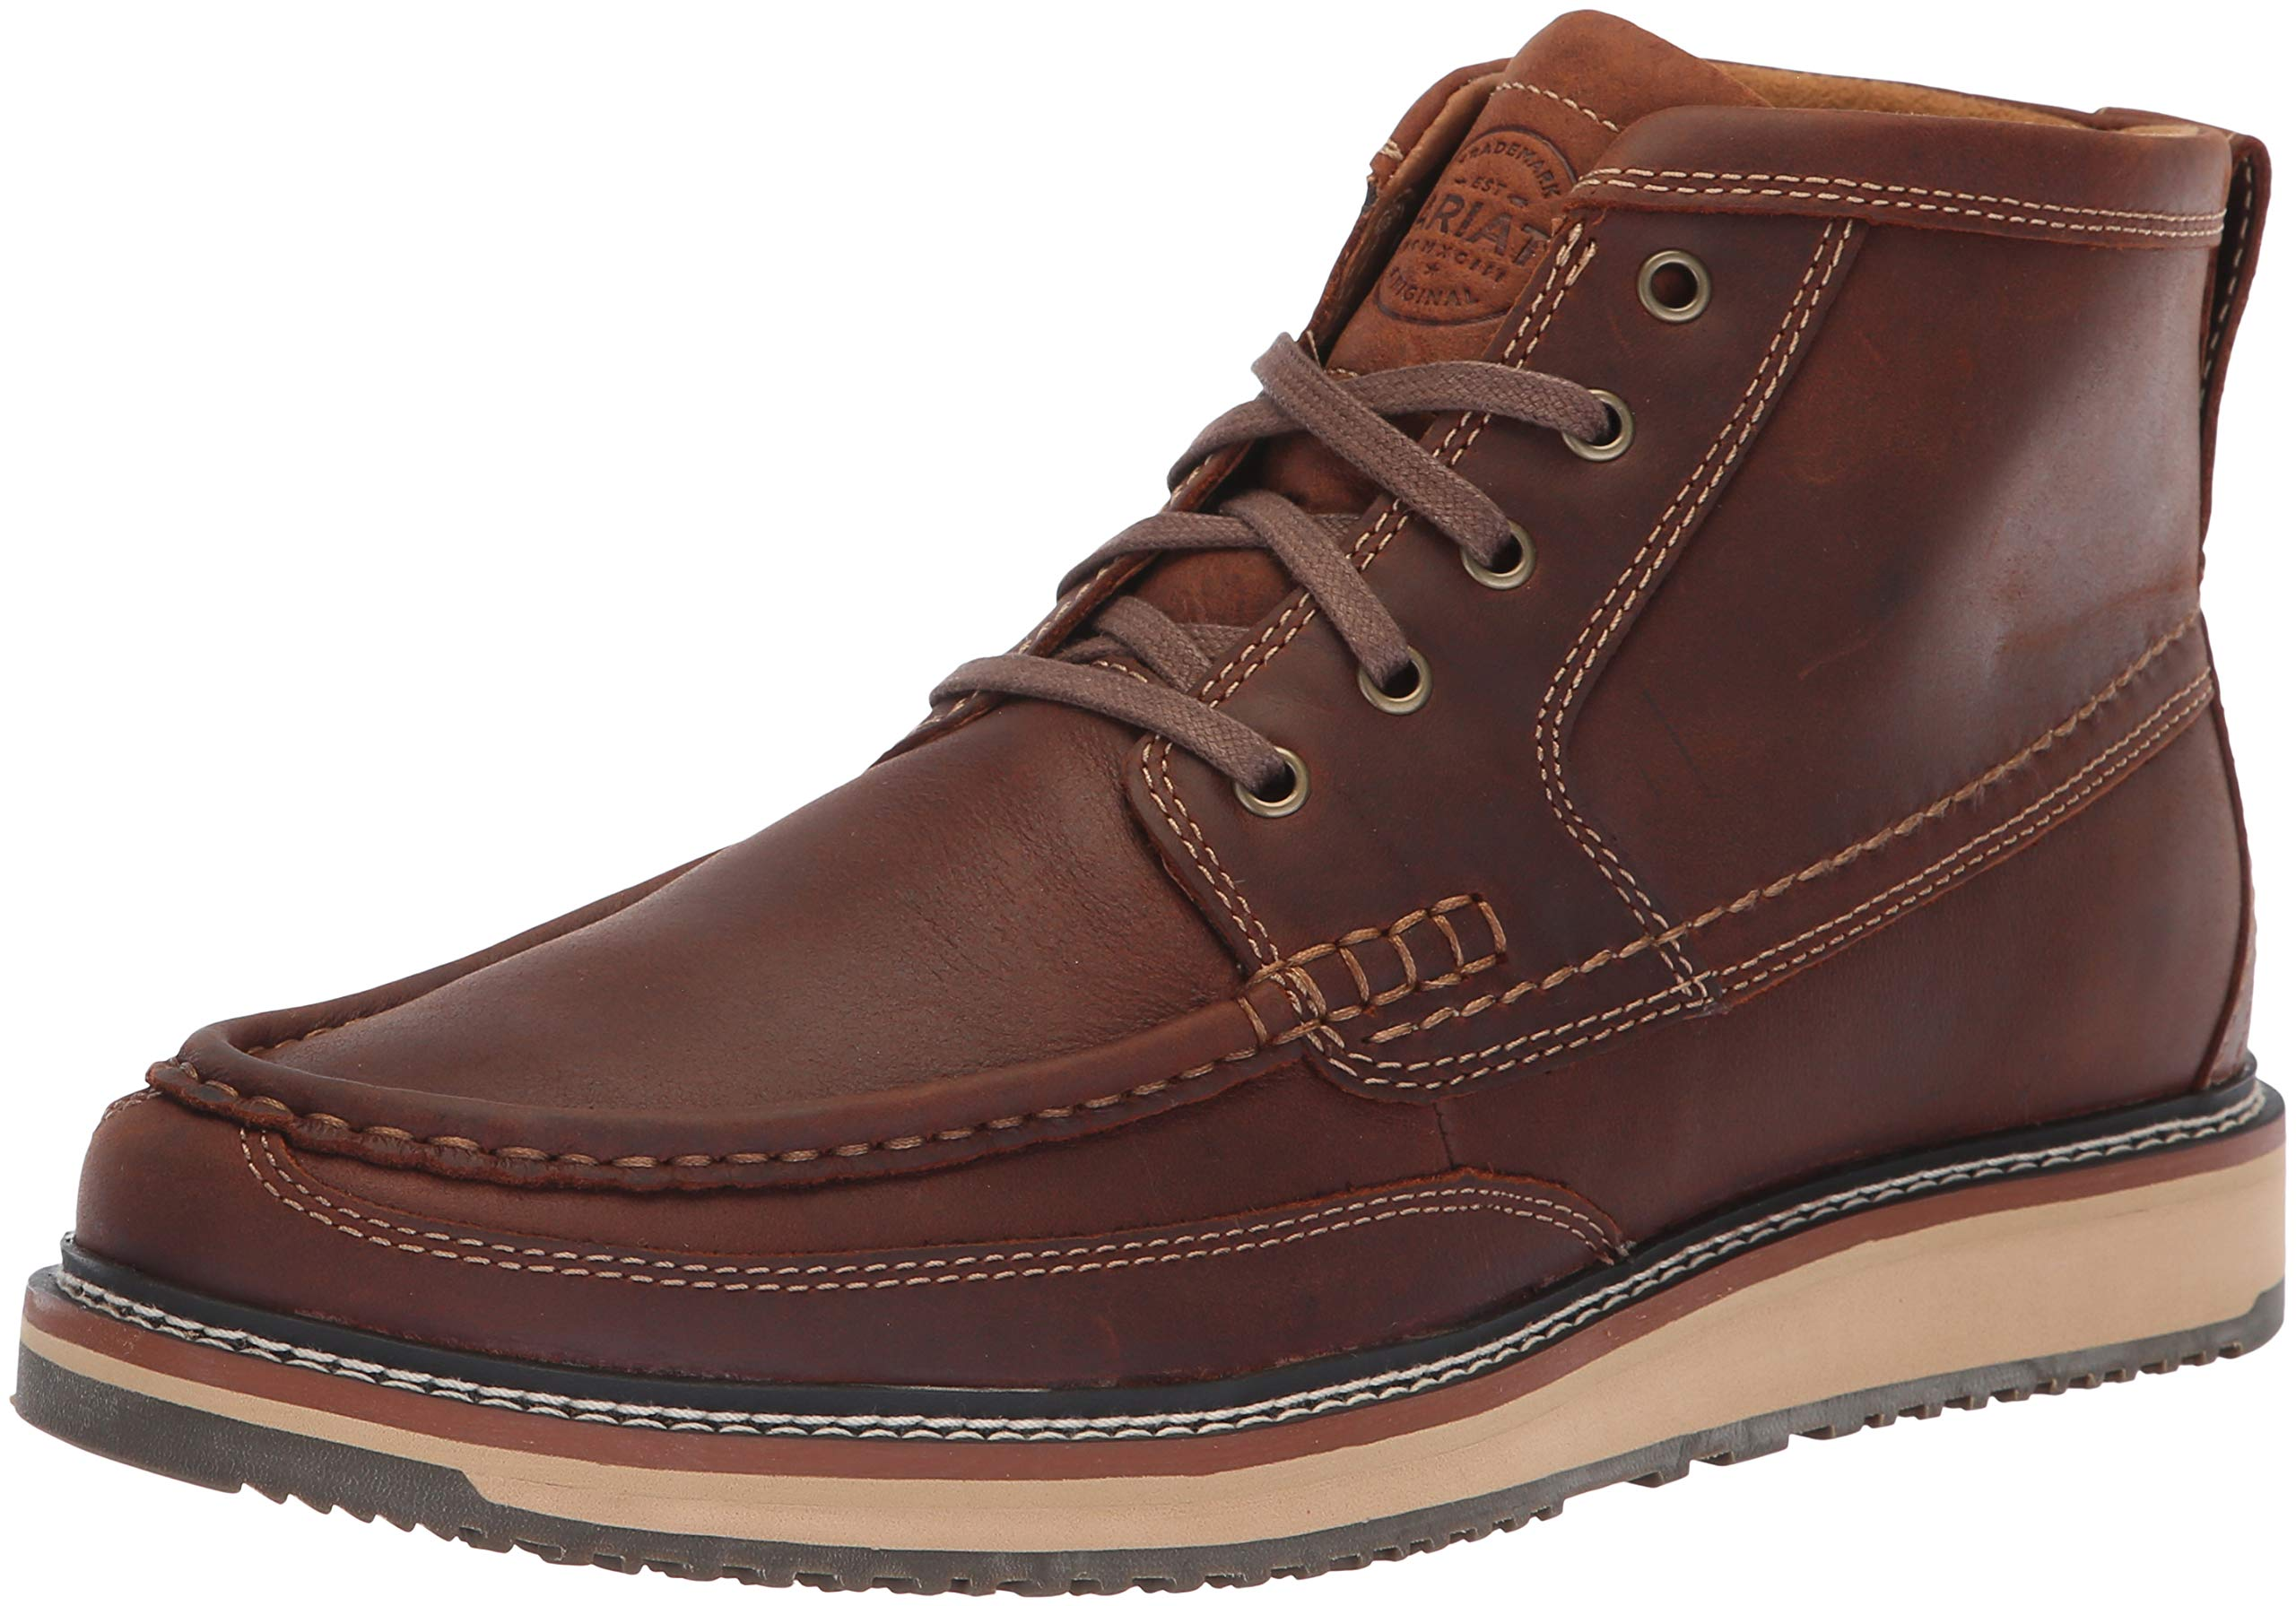 Ariat Men's Lookout Western Boot, Foothill Brown, 11 D US